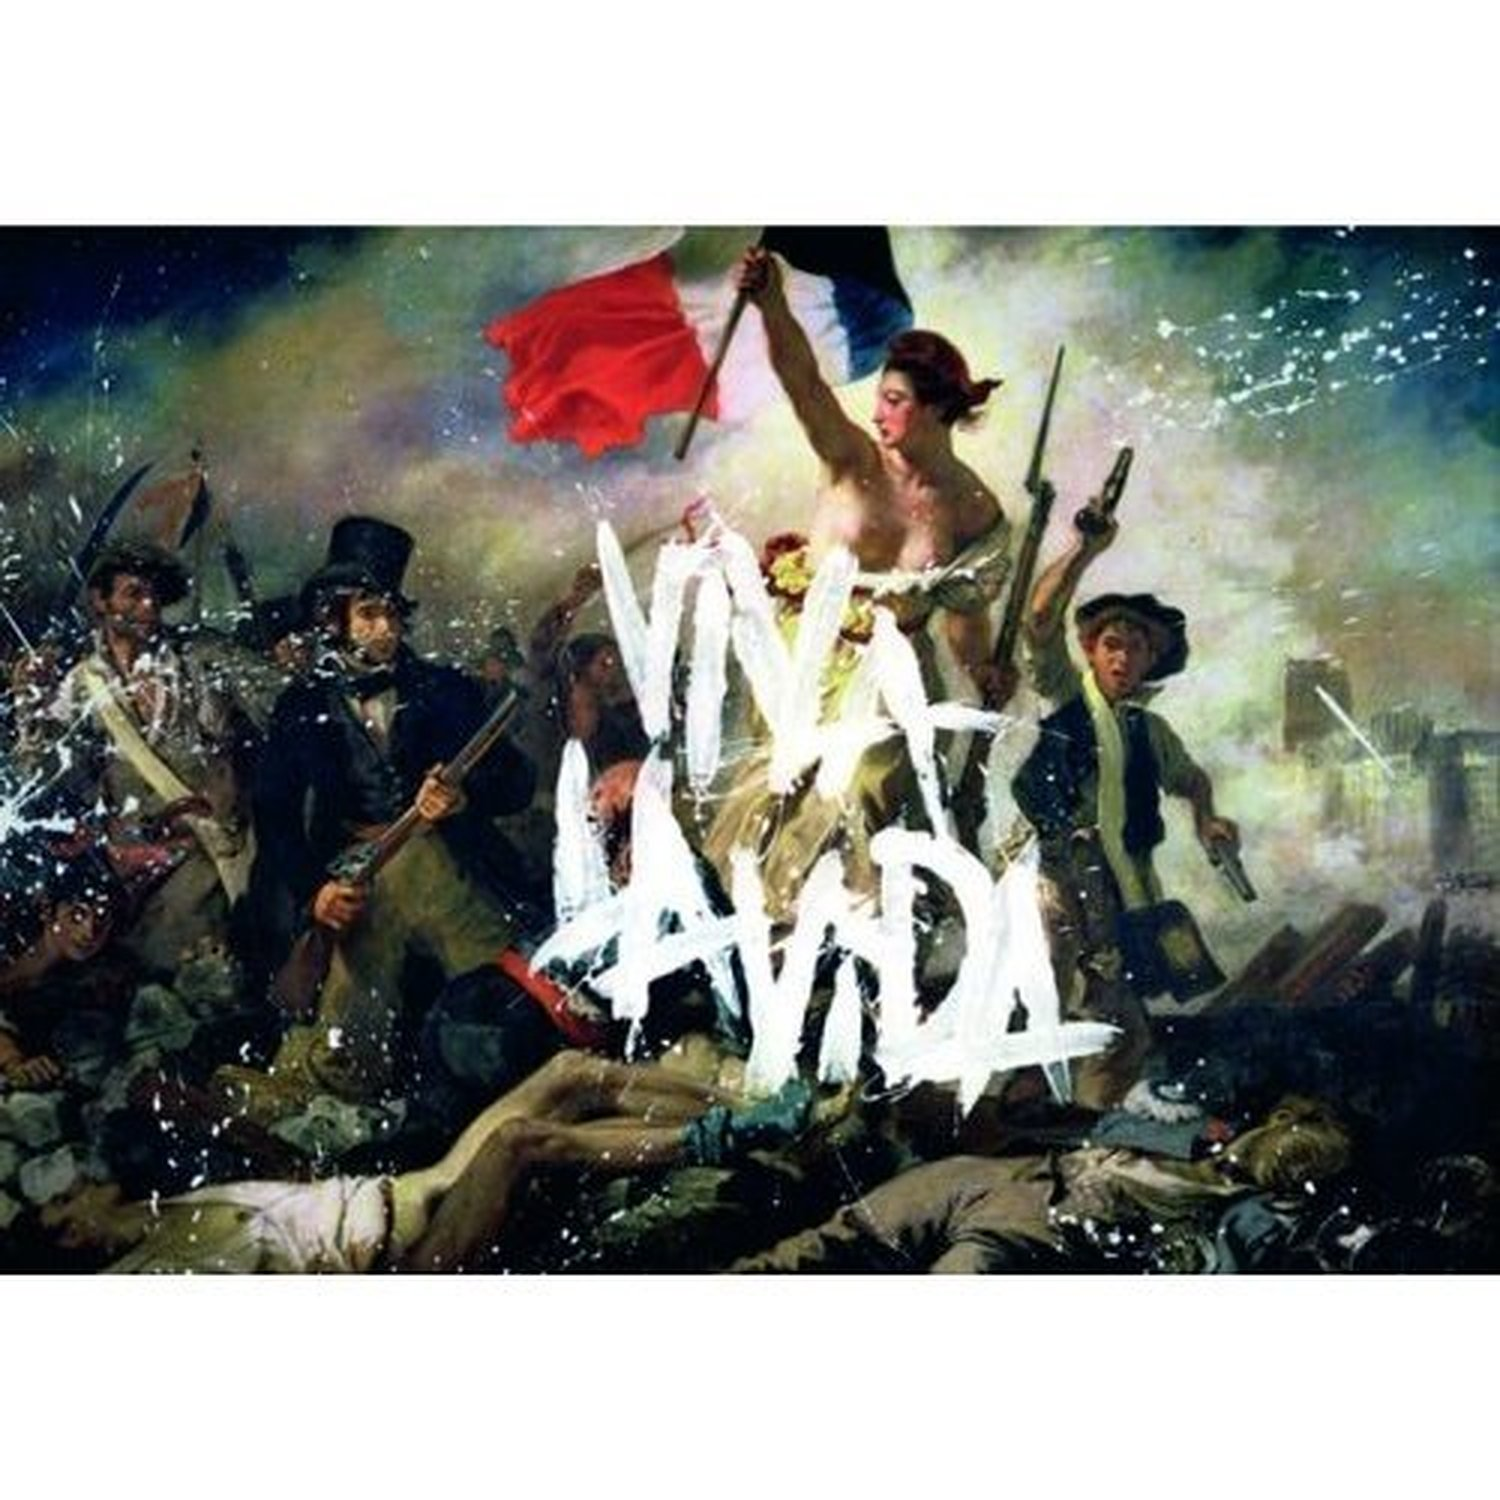 Coldplay Viva La Vida Postcard Album Cover Image Picture